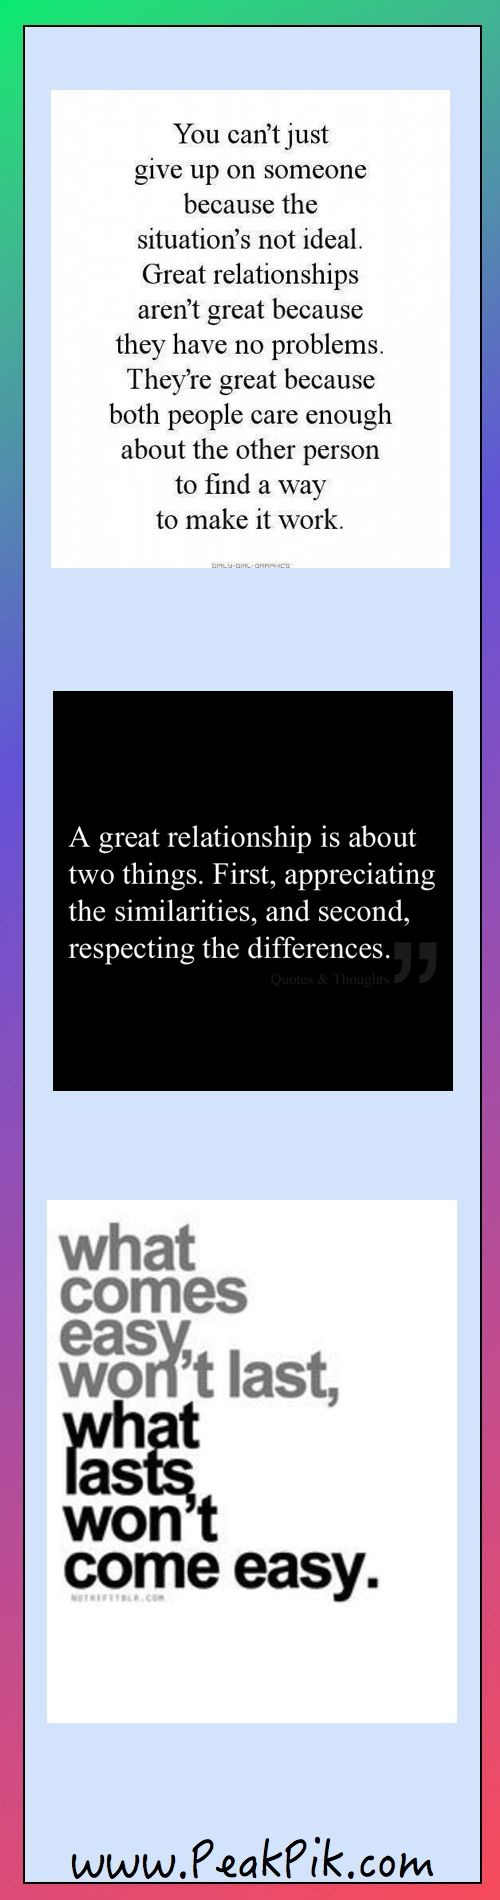 Daily Tips And Motivation | Inspirational Quotes About Relationships-This Is Why You Don't Want To Give Up!